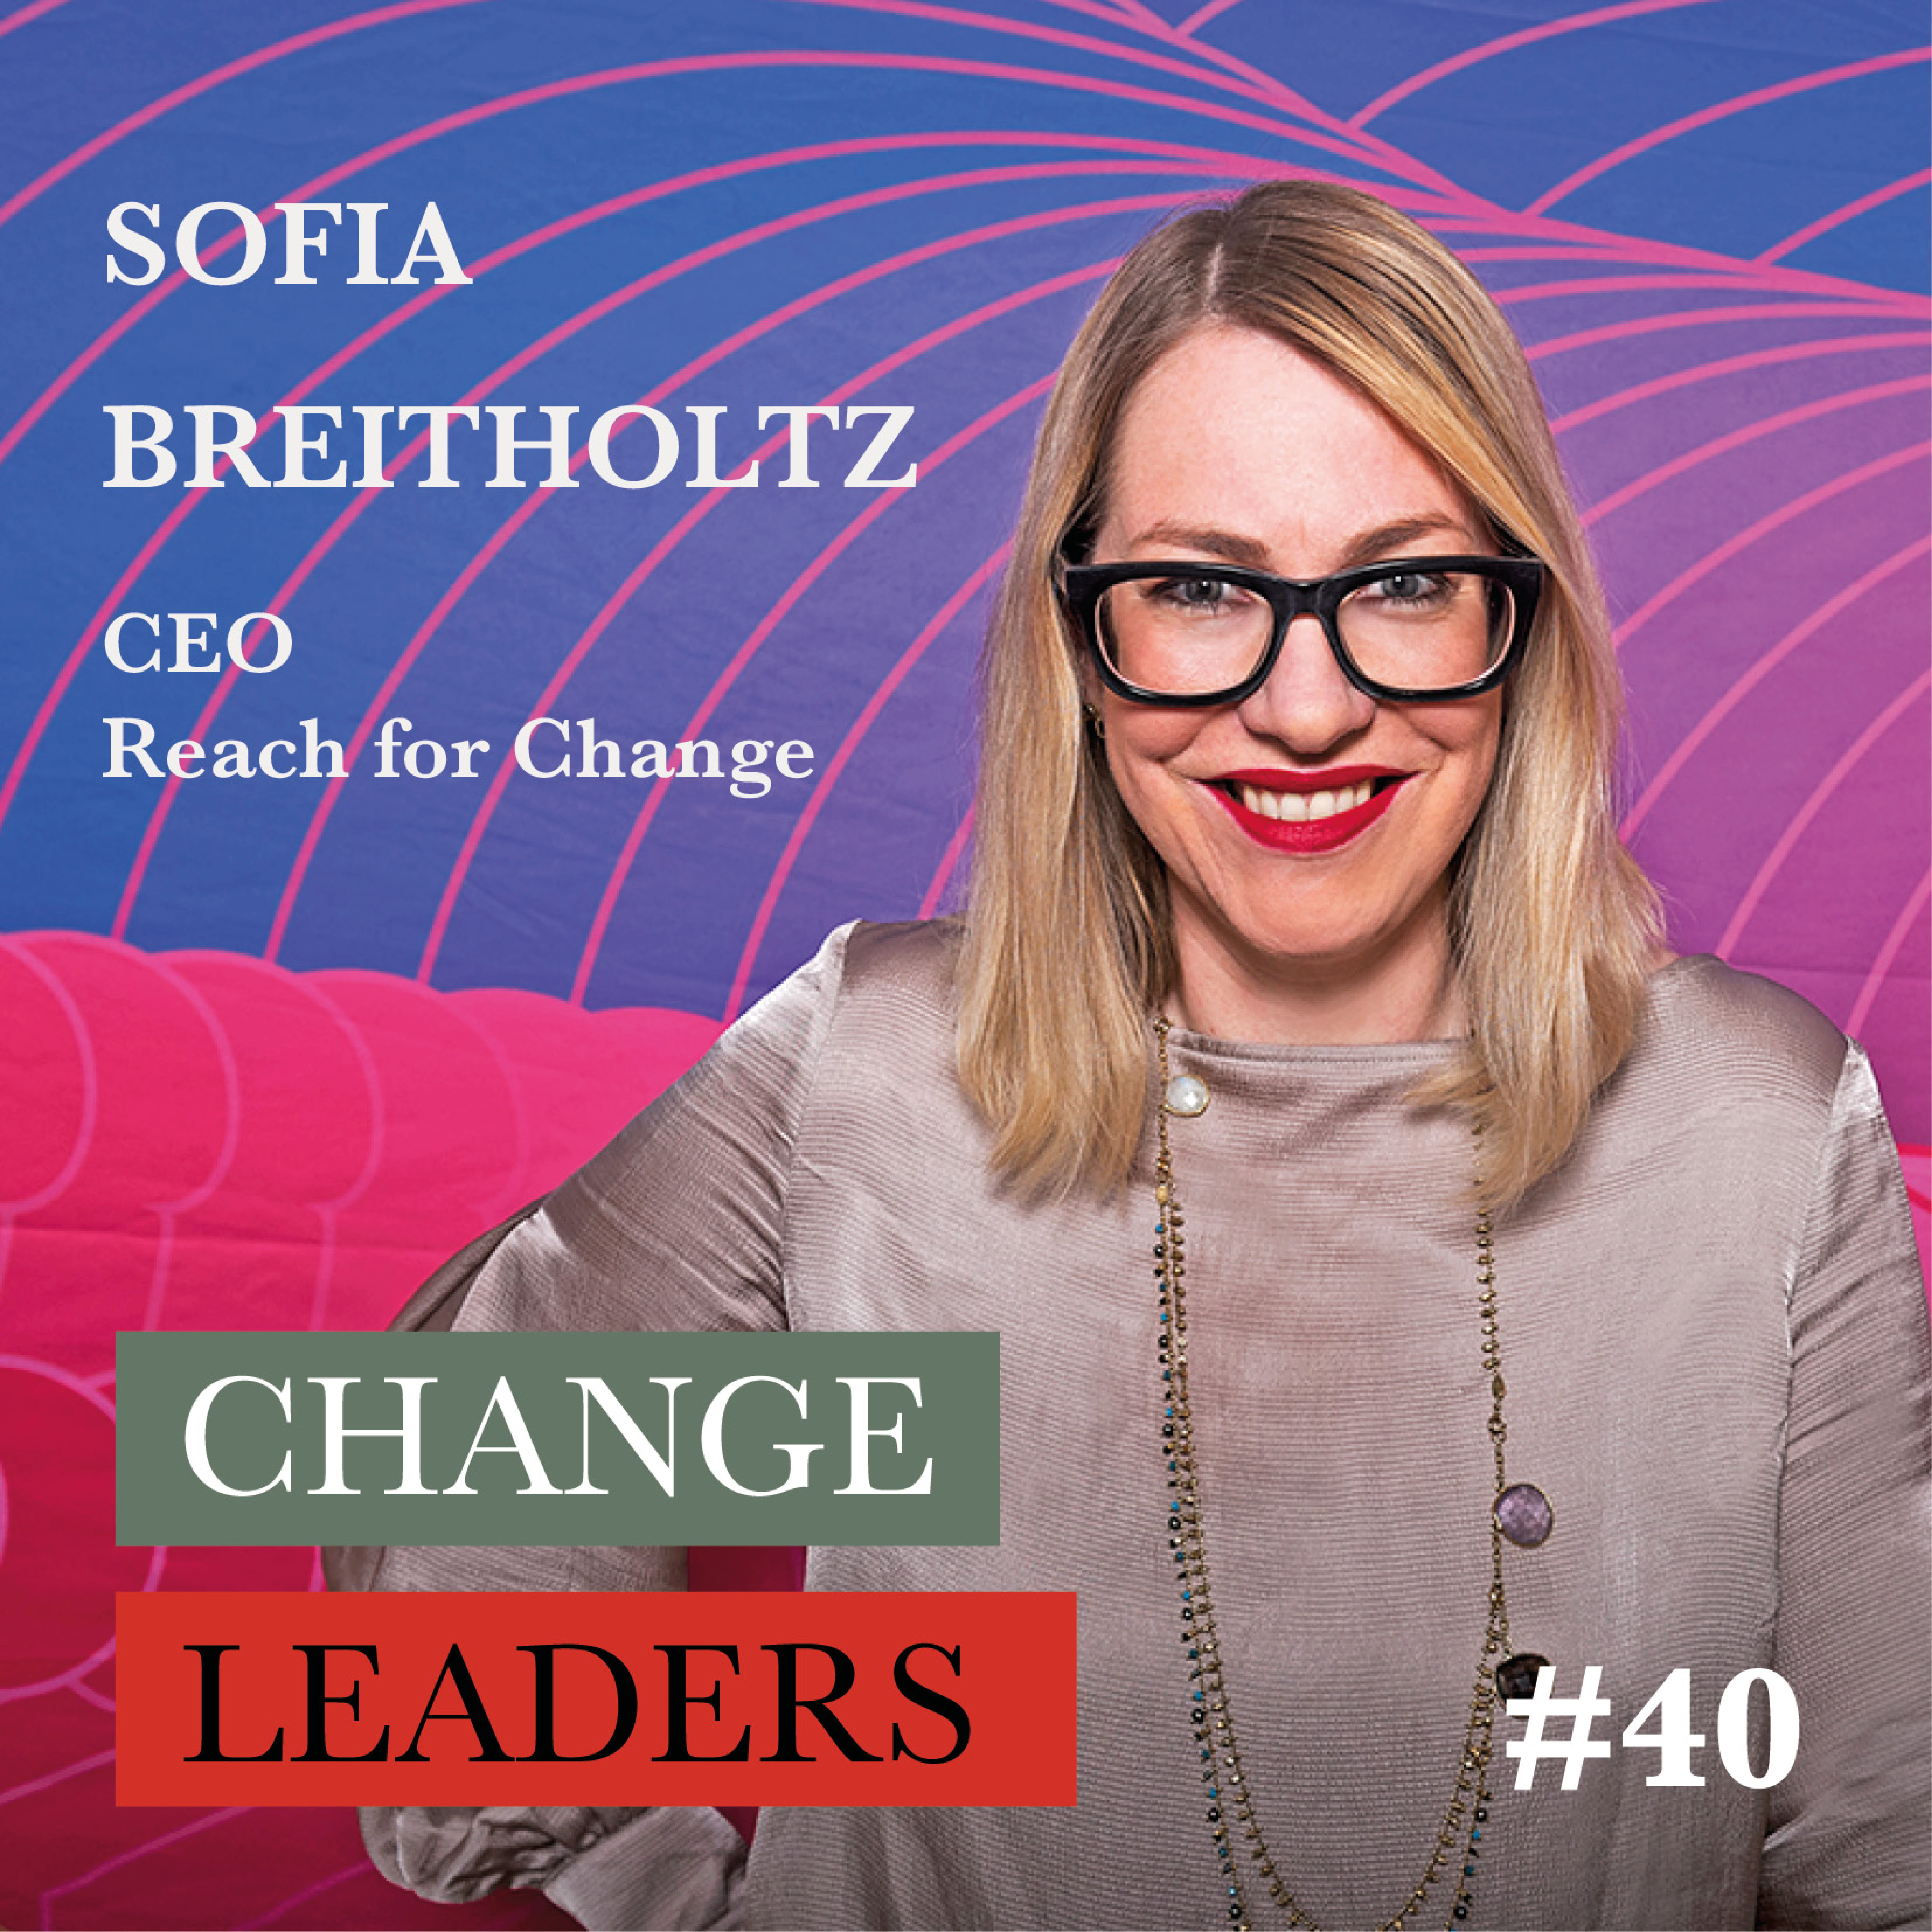 #40 Sofia Breitholtz, CEO Reach for Change - A better world for children and youth